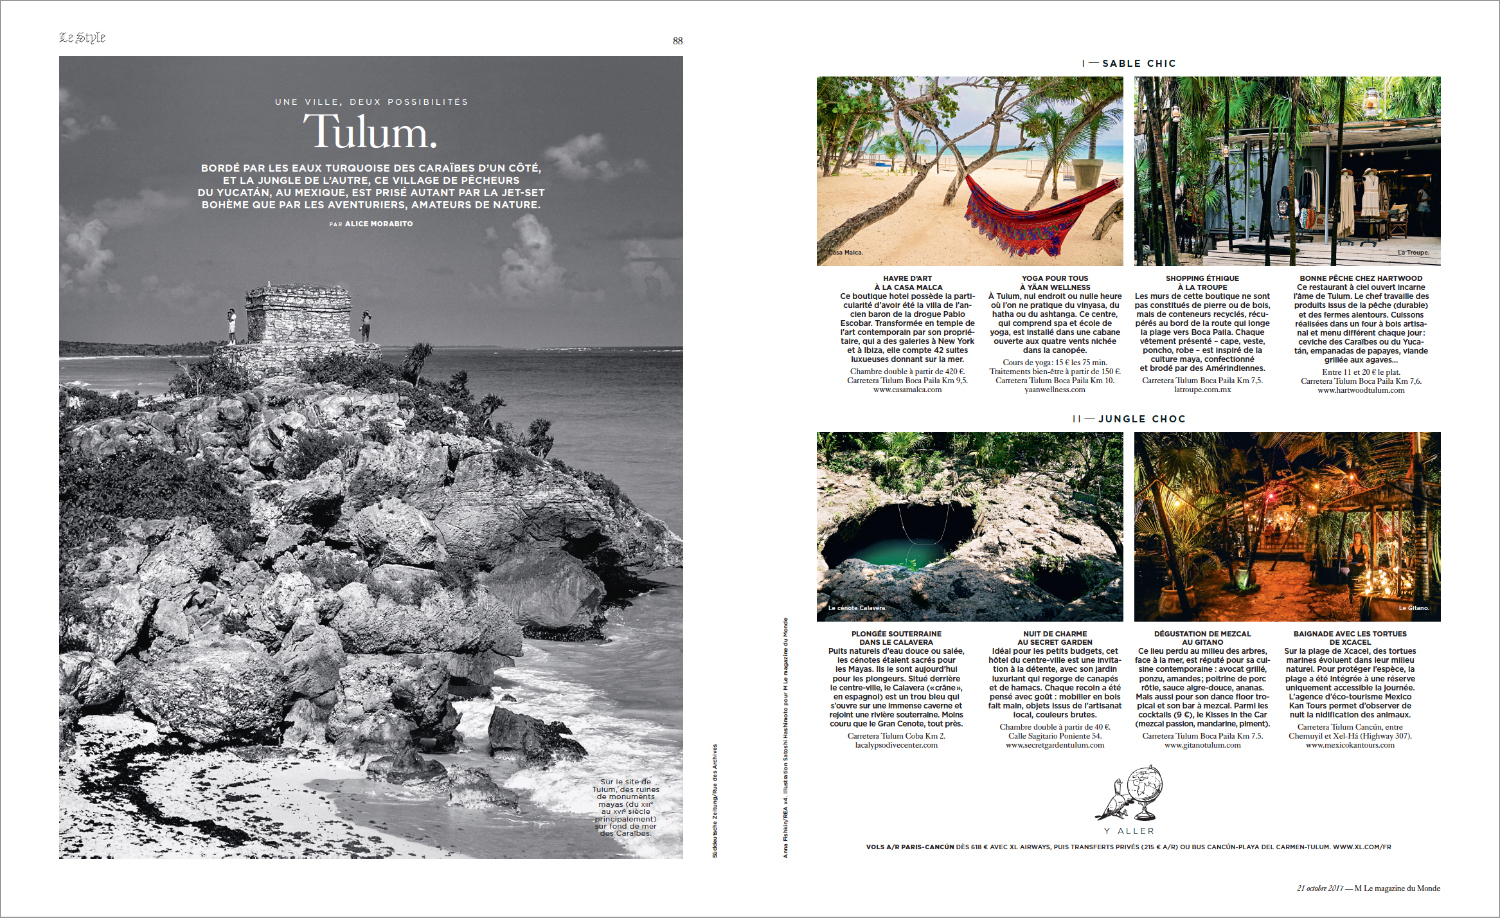 Tulum Travel Guide for Le Monde Magazine, France – Everystring.com ...